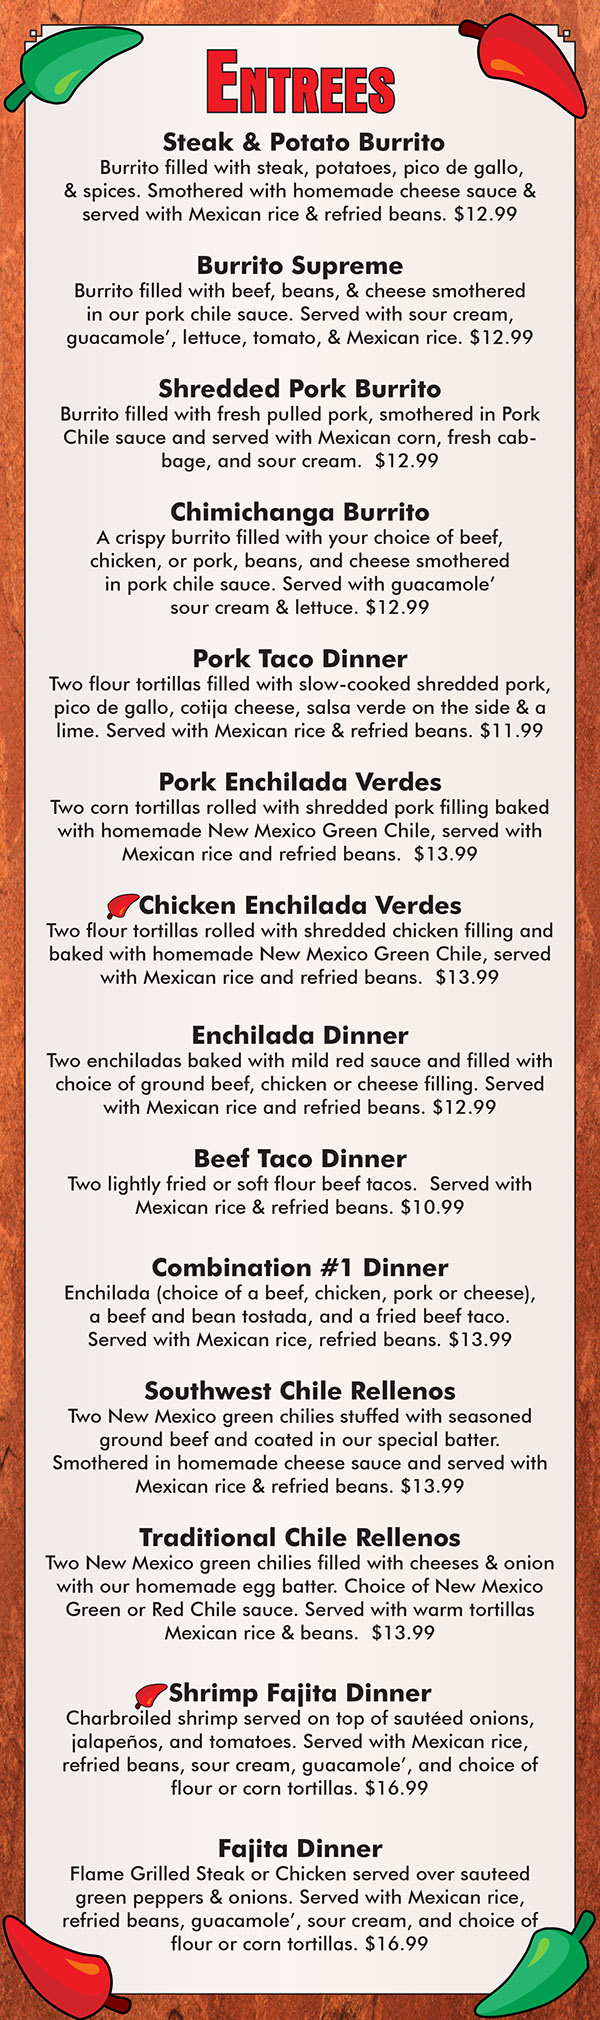 La Paloma Mexican Restaurant Menu With Prices Lincoln